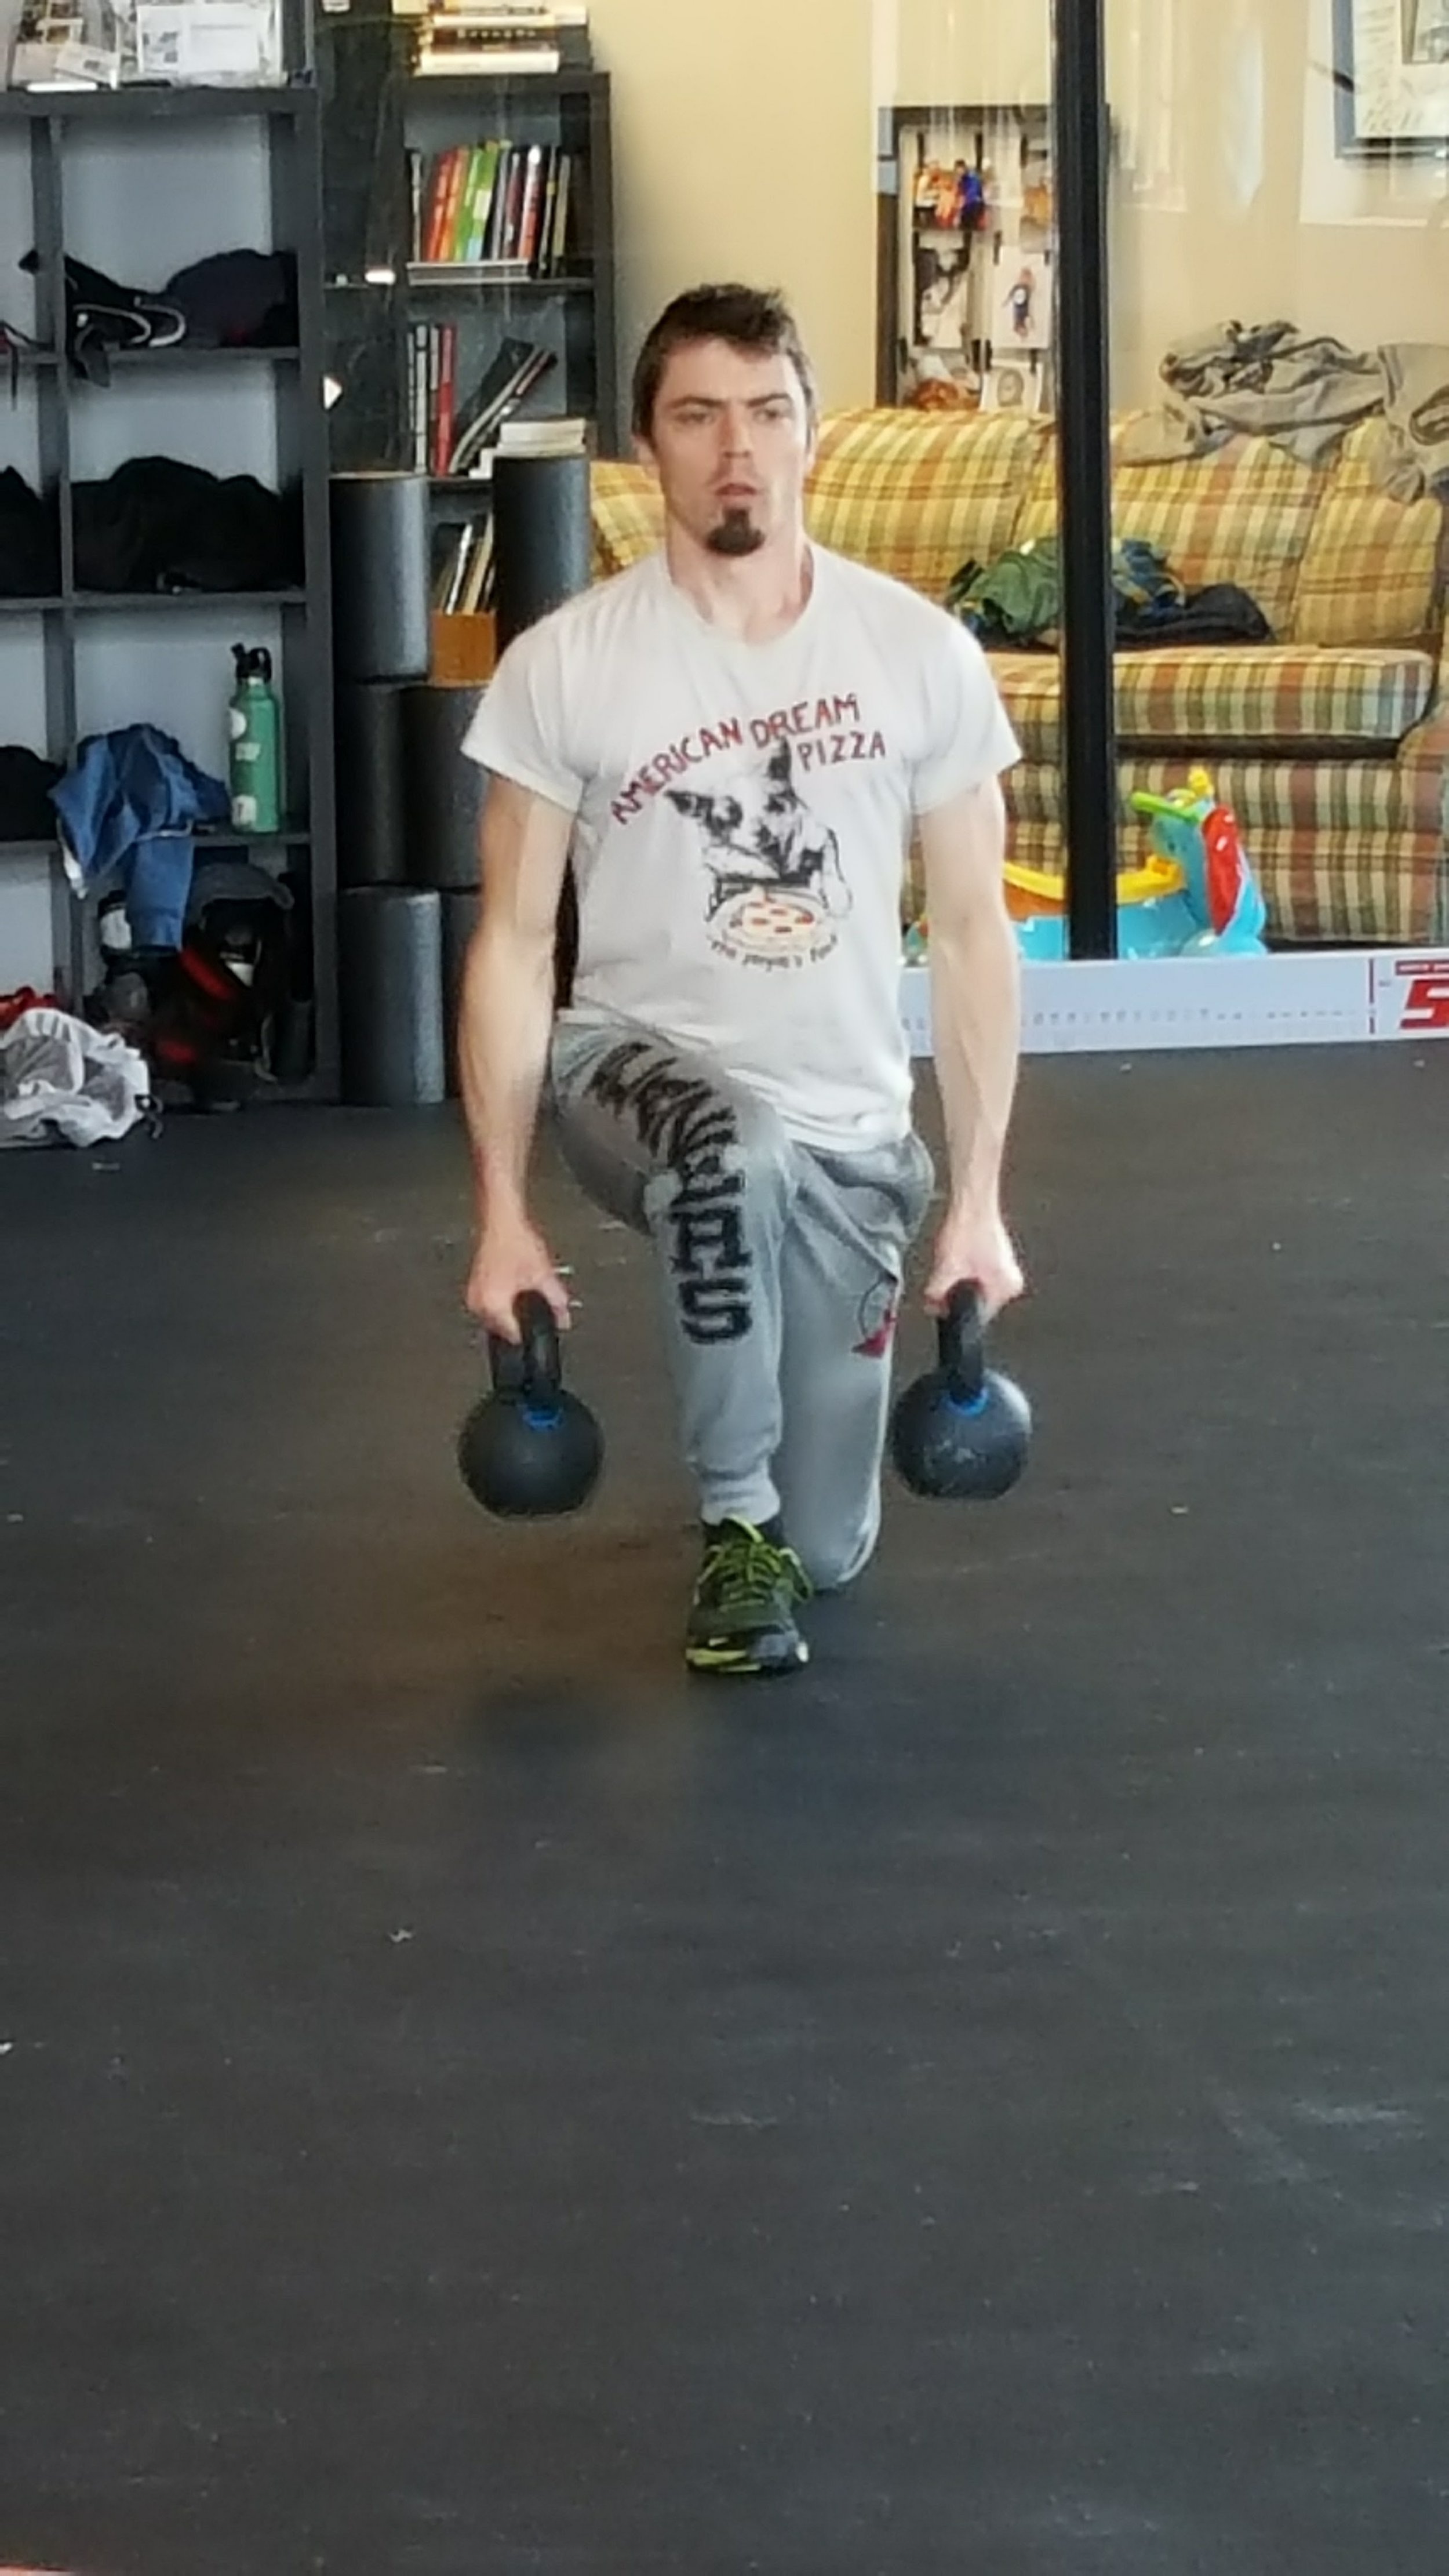 Athletes train with kettlebells to build strength